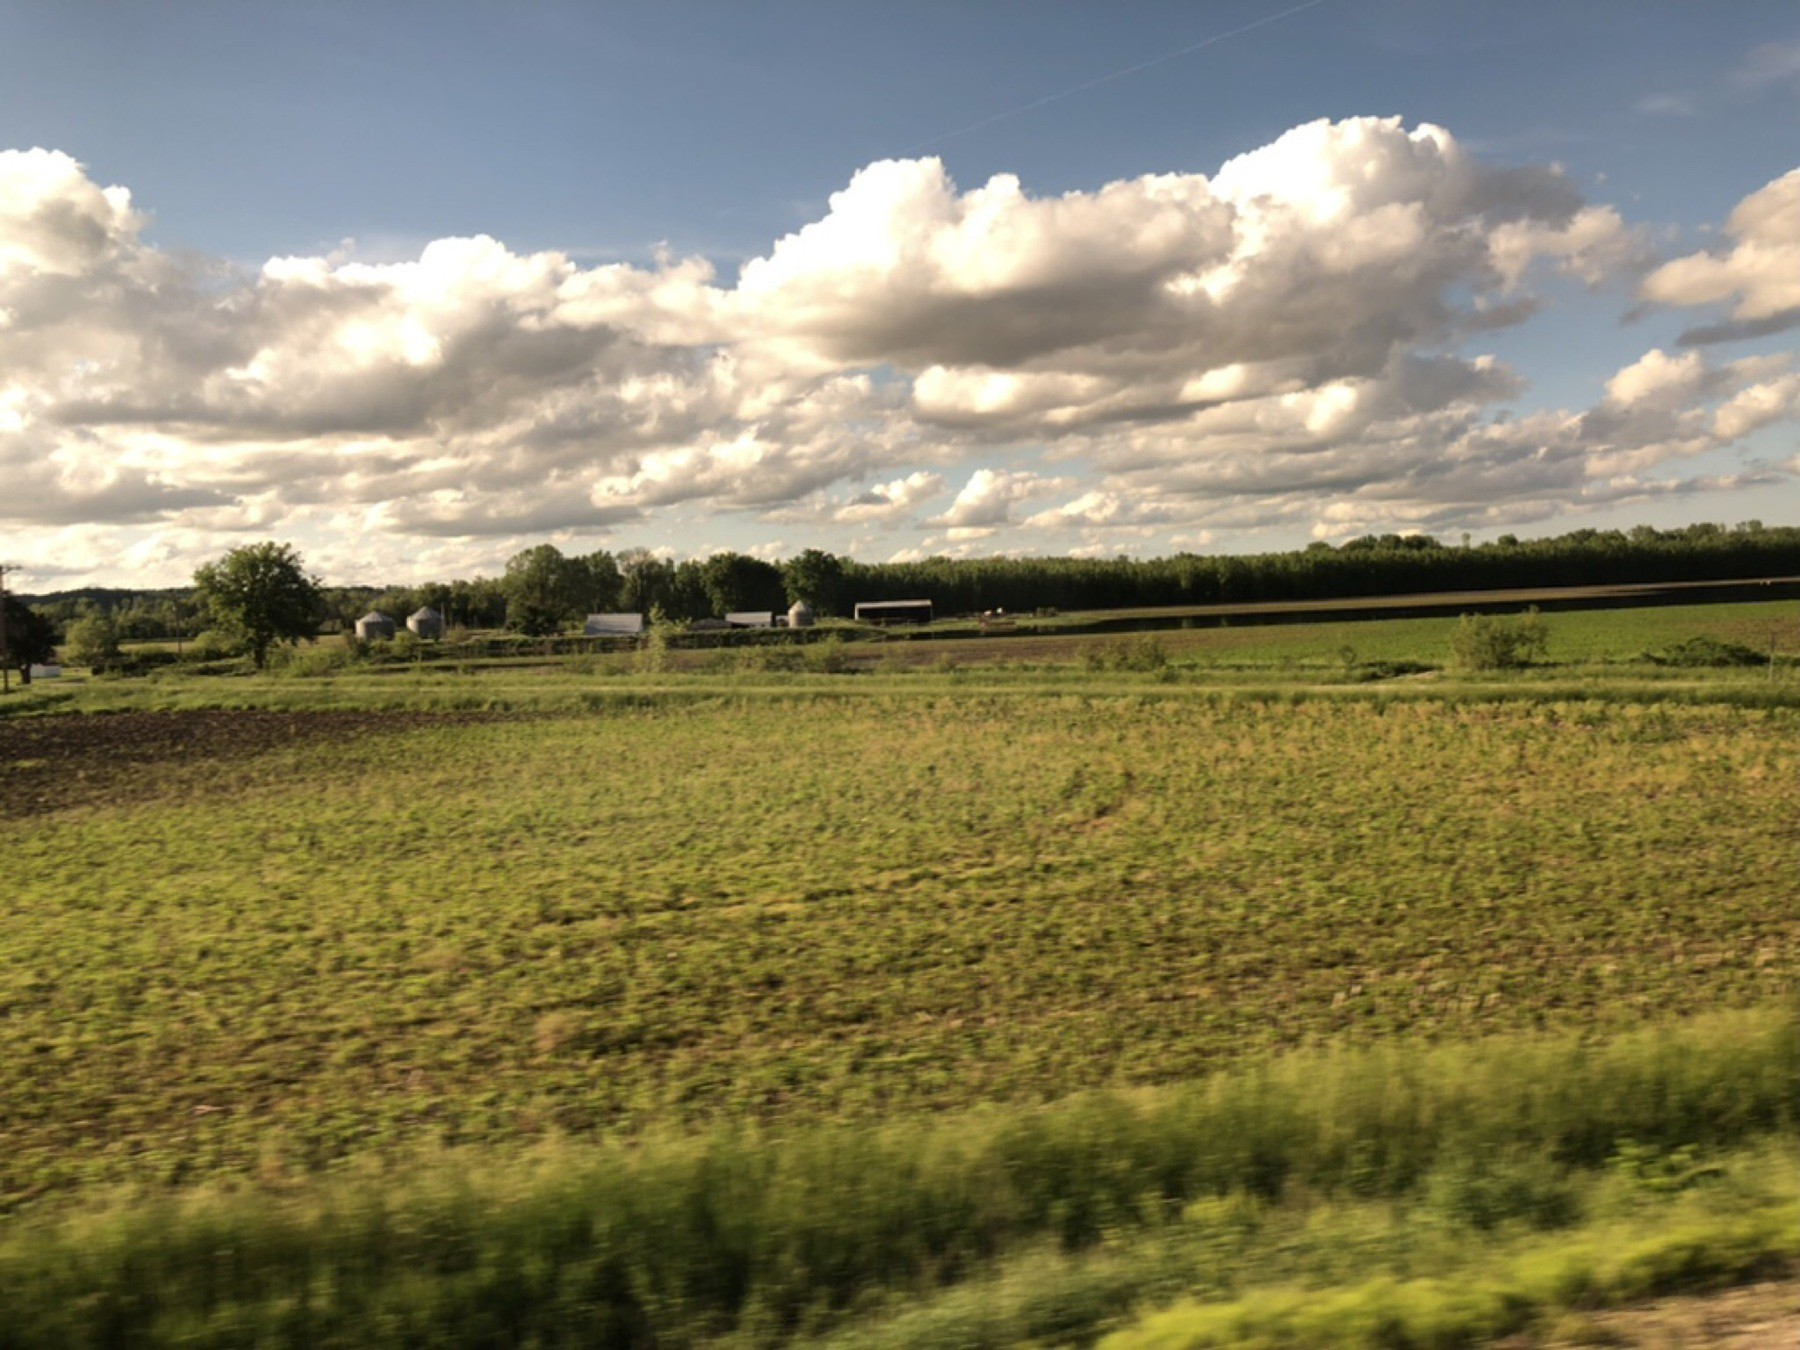 View of lush midwestern field from train window